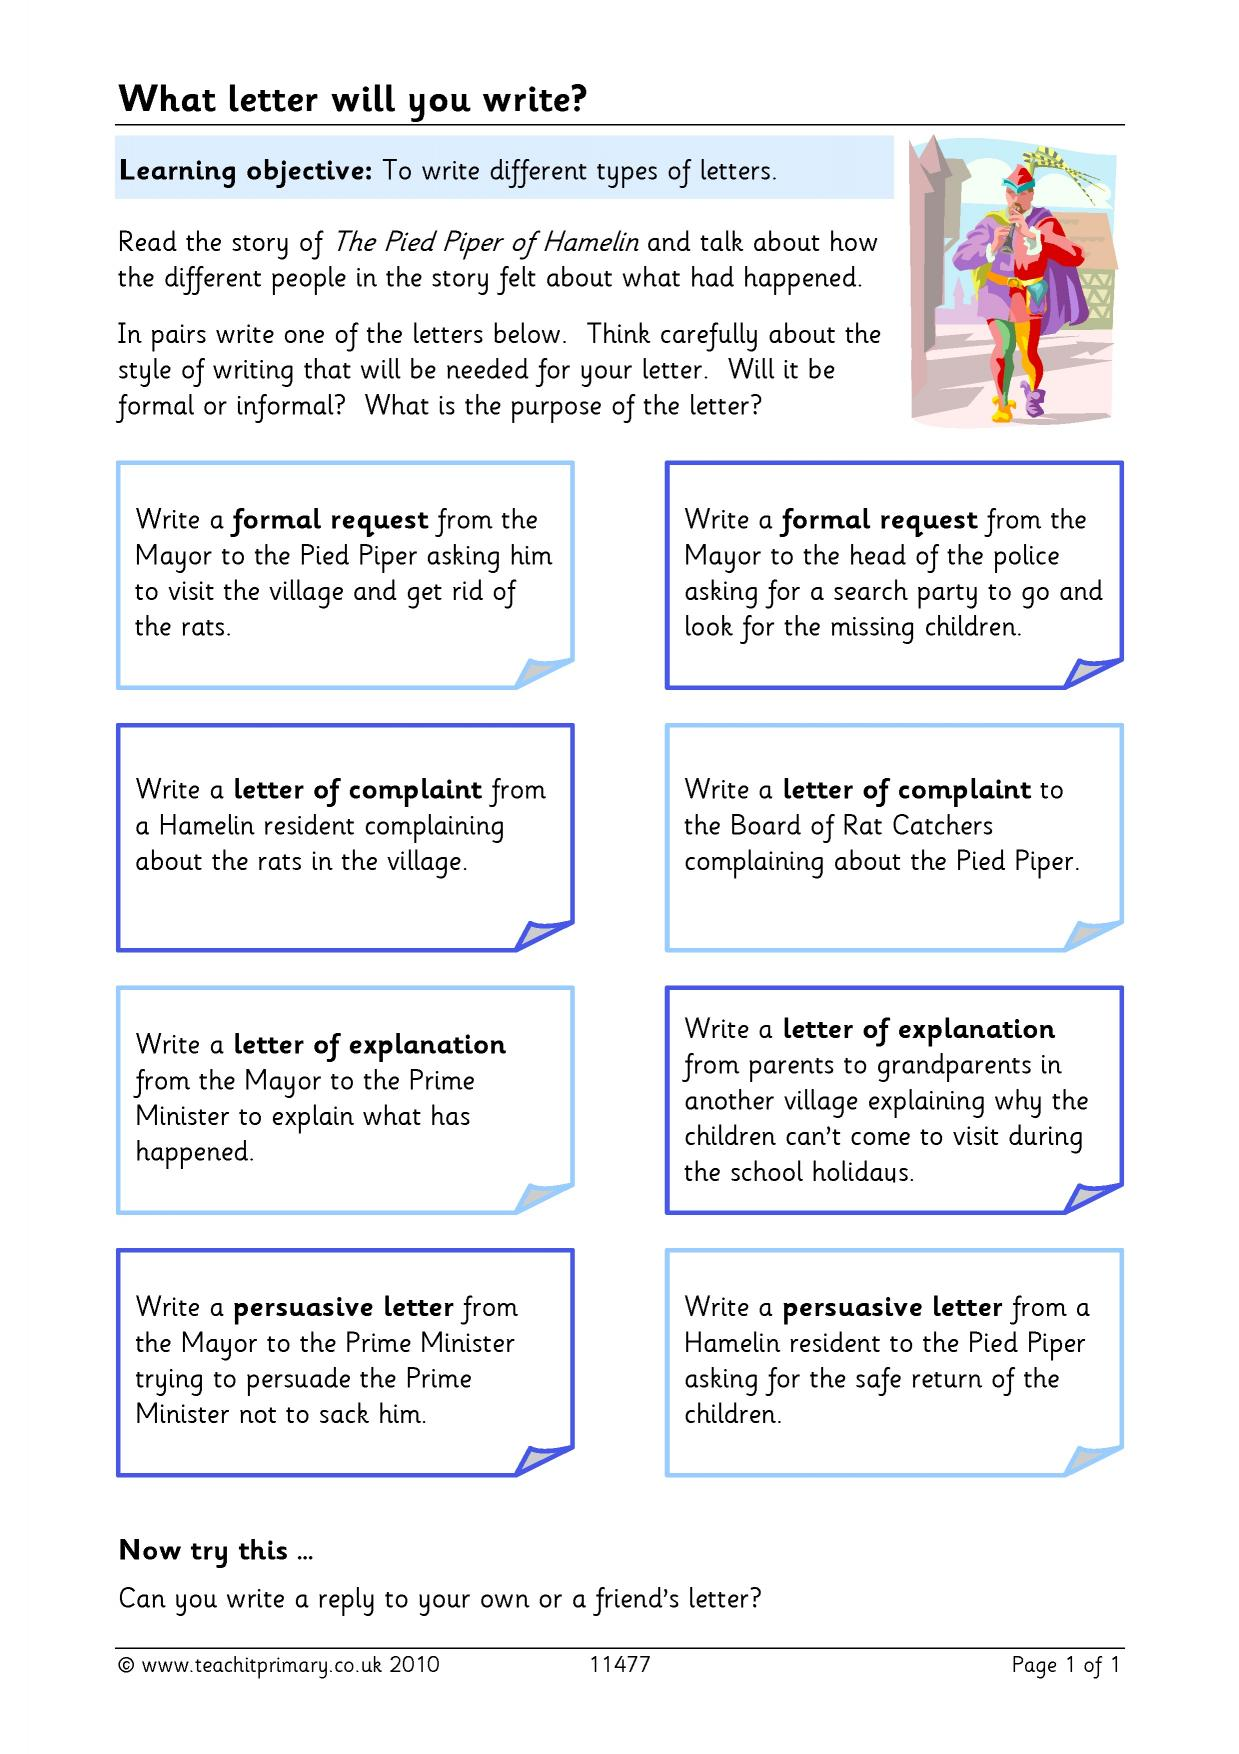 Eyfs ks1 ks2 letter writing teachit primary 2 preview spiritdancerdesigns Choice Image